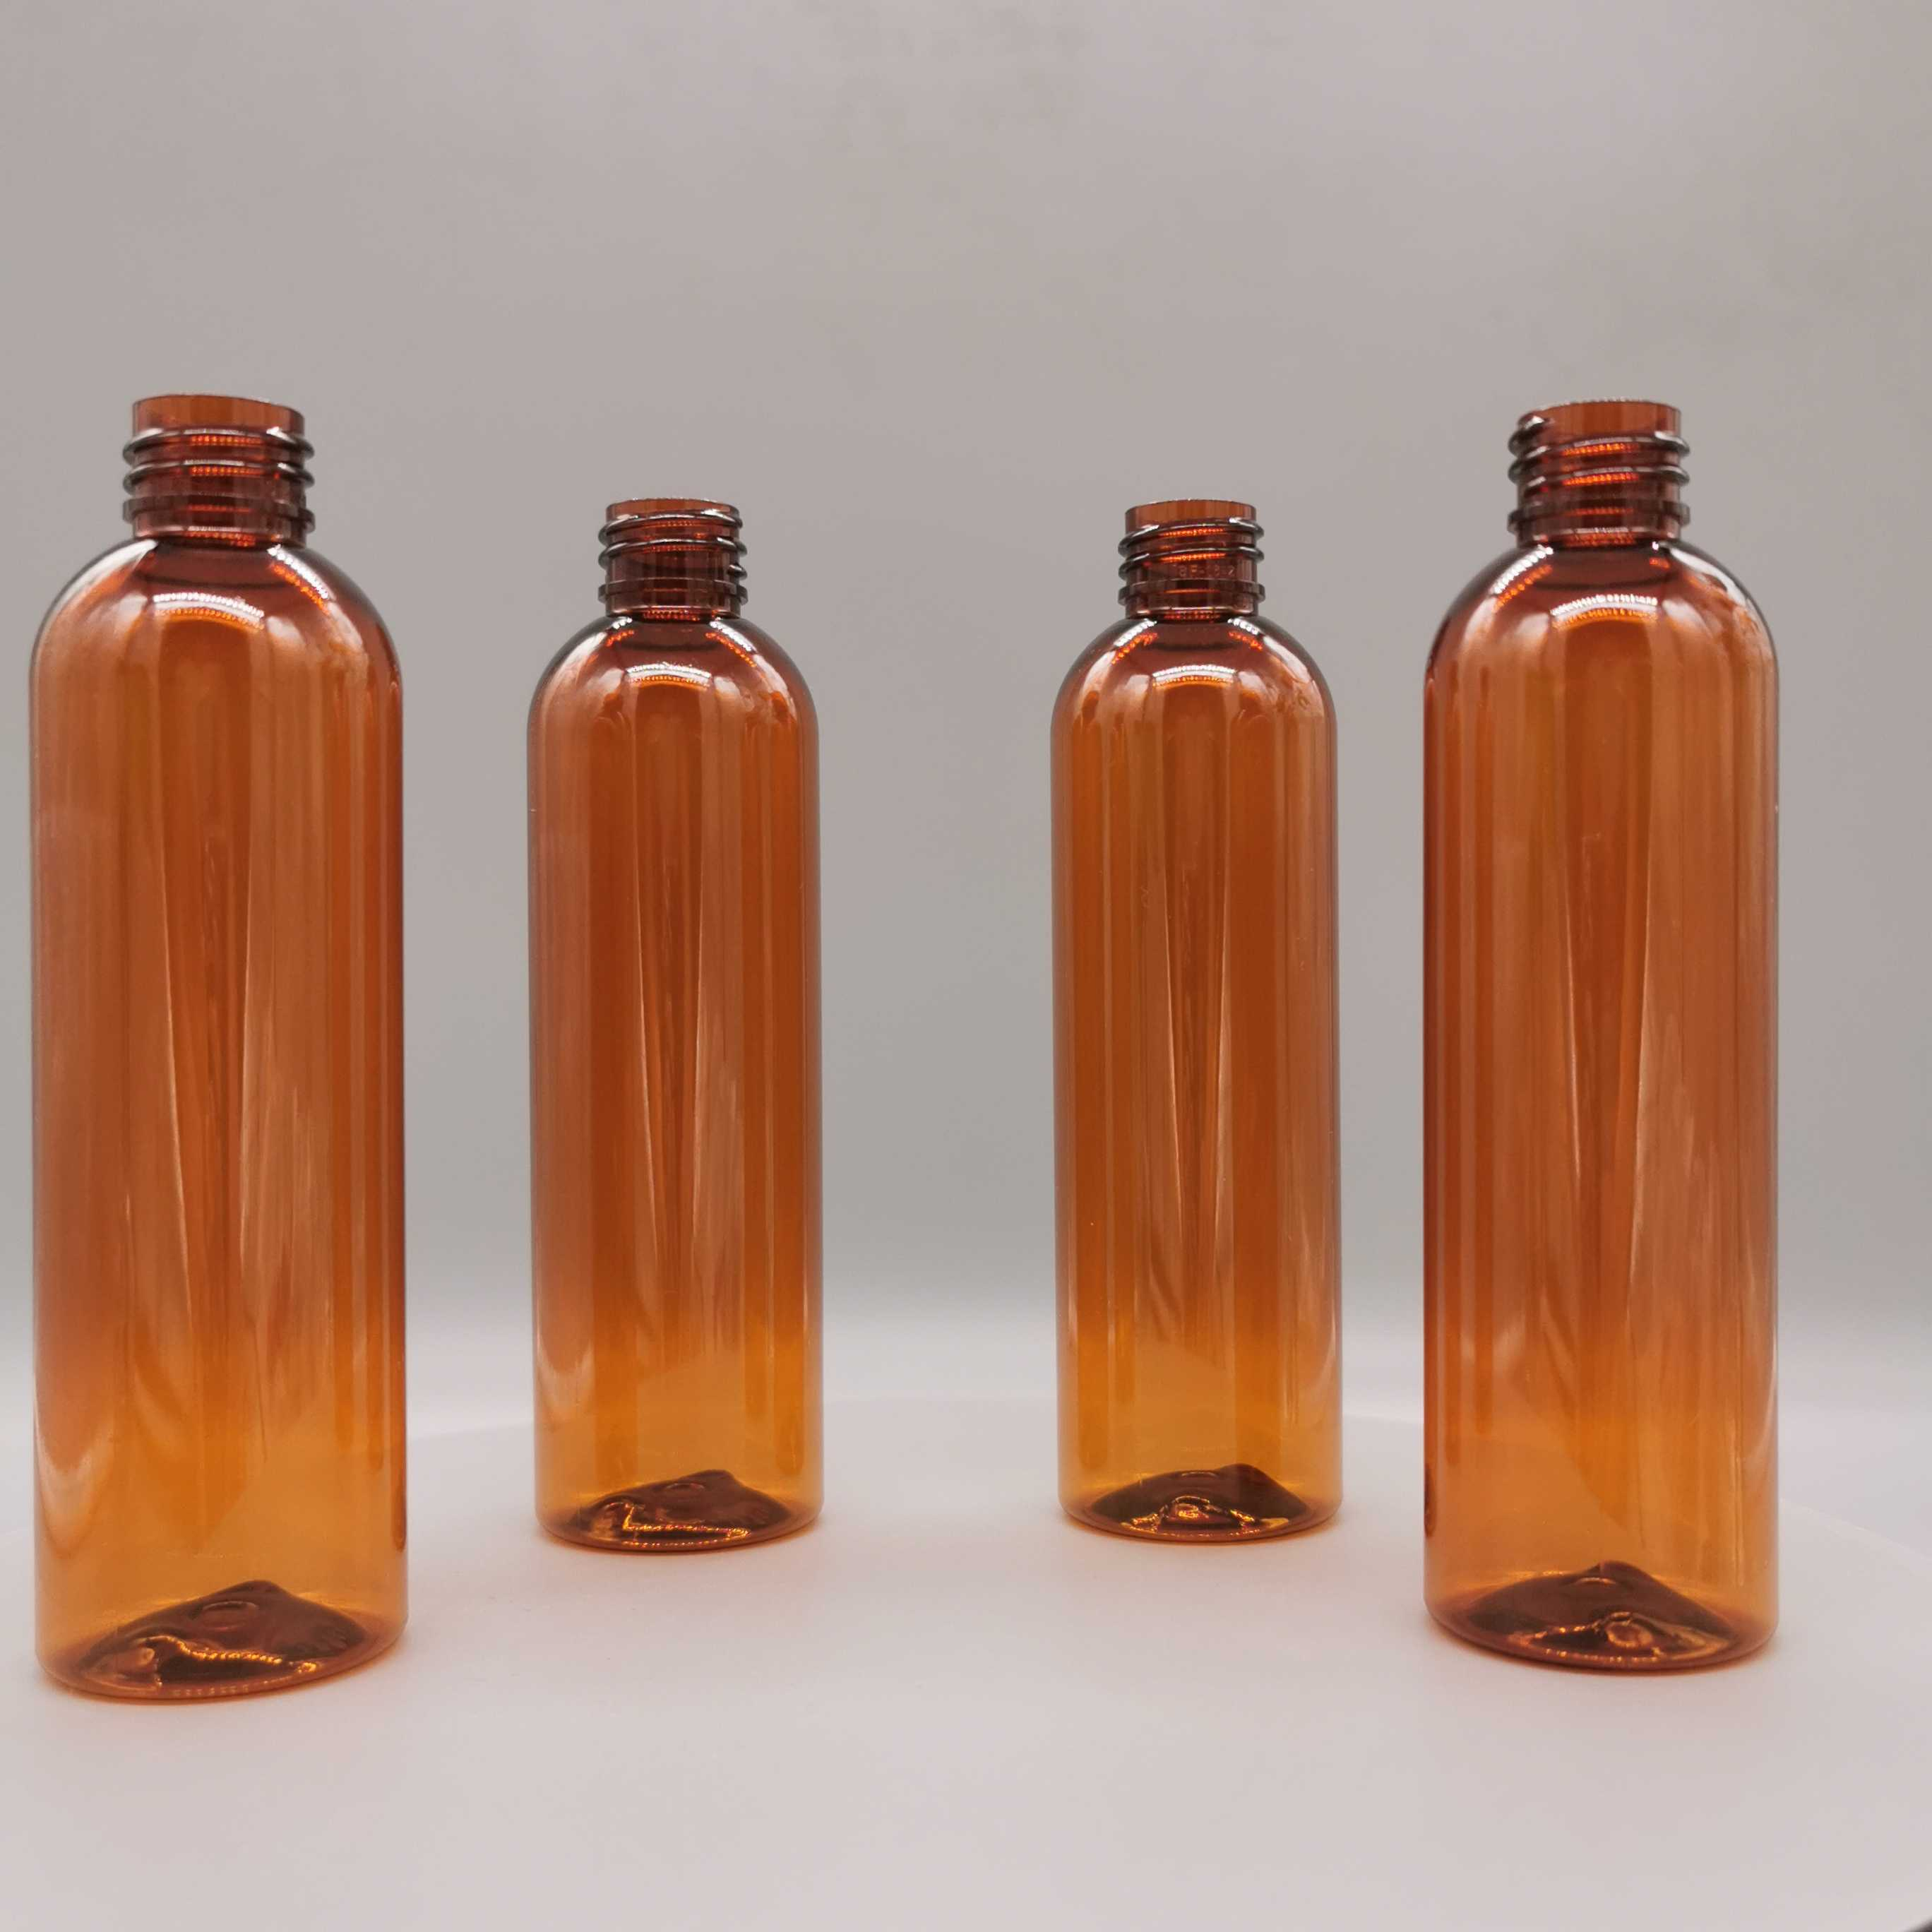 6 oz brown bubllet bottle